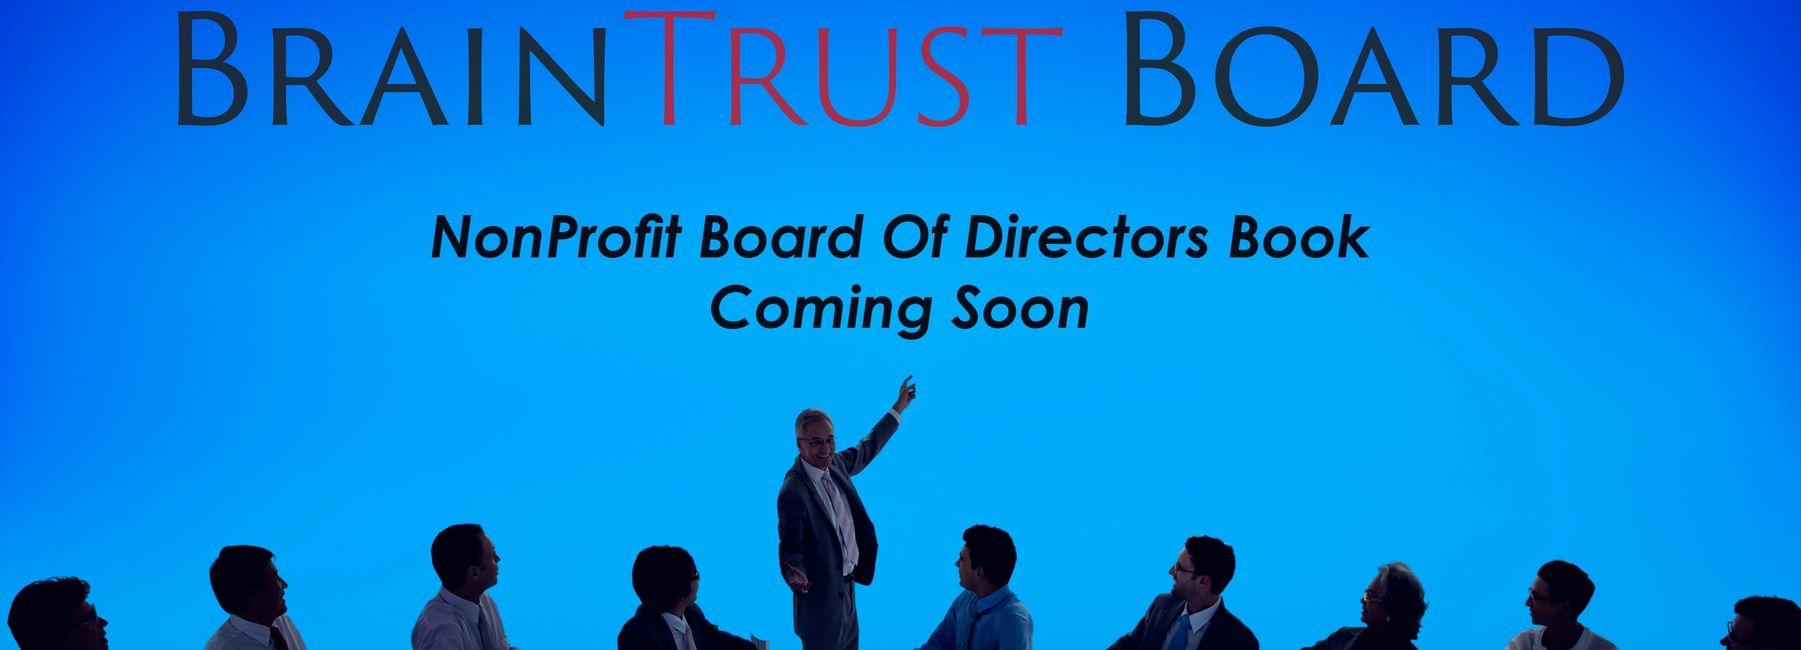 Nonprofit Board of Directors Book coming in July 2020. Corporate governance for Nonprofit Directors.